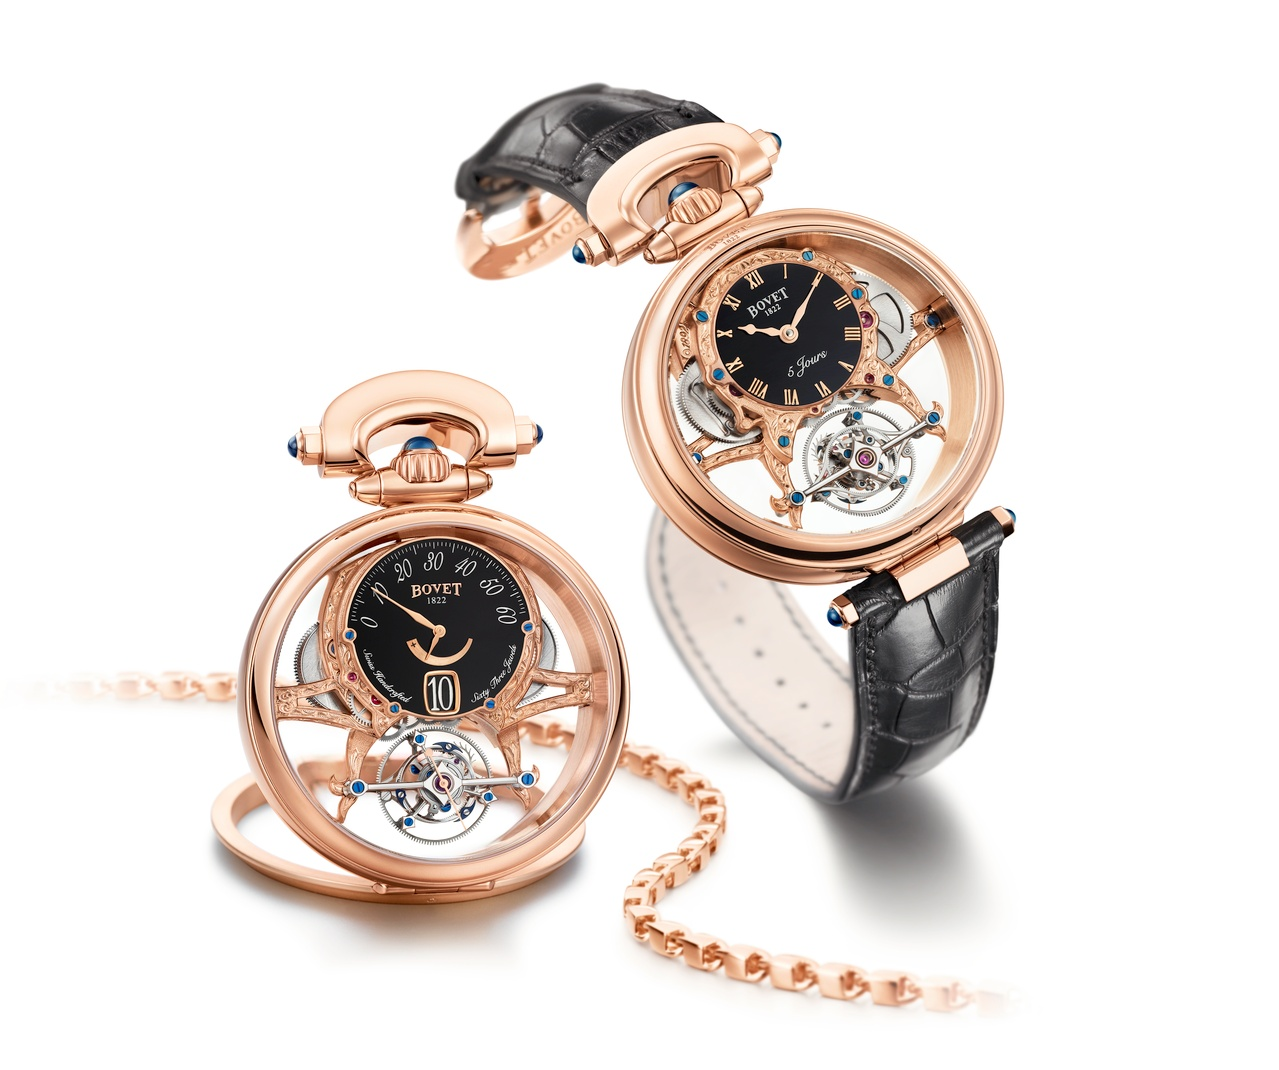 Bovet Watch   Amadeo Fleurier Grandes Complications   Ref. Nr.  AIVI001    Call 312-944-3100  | For Availability